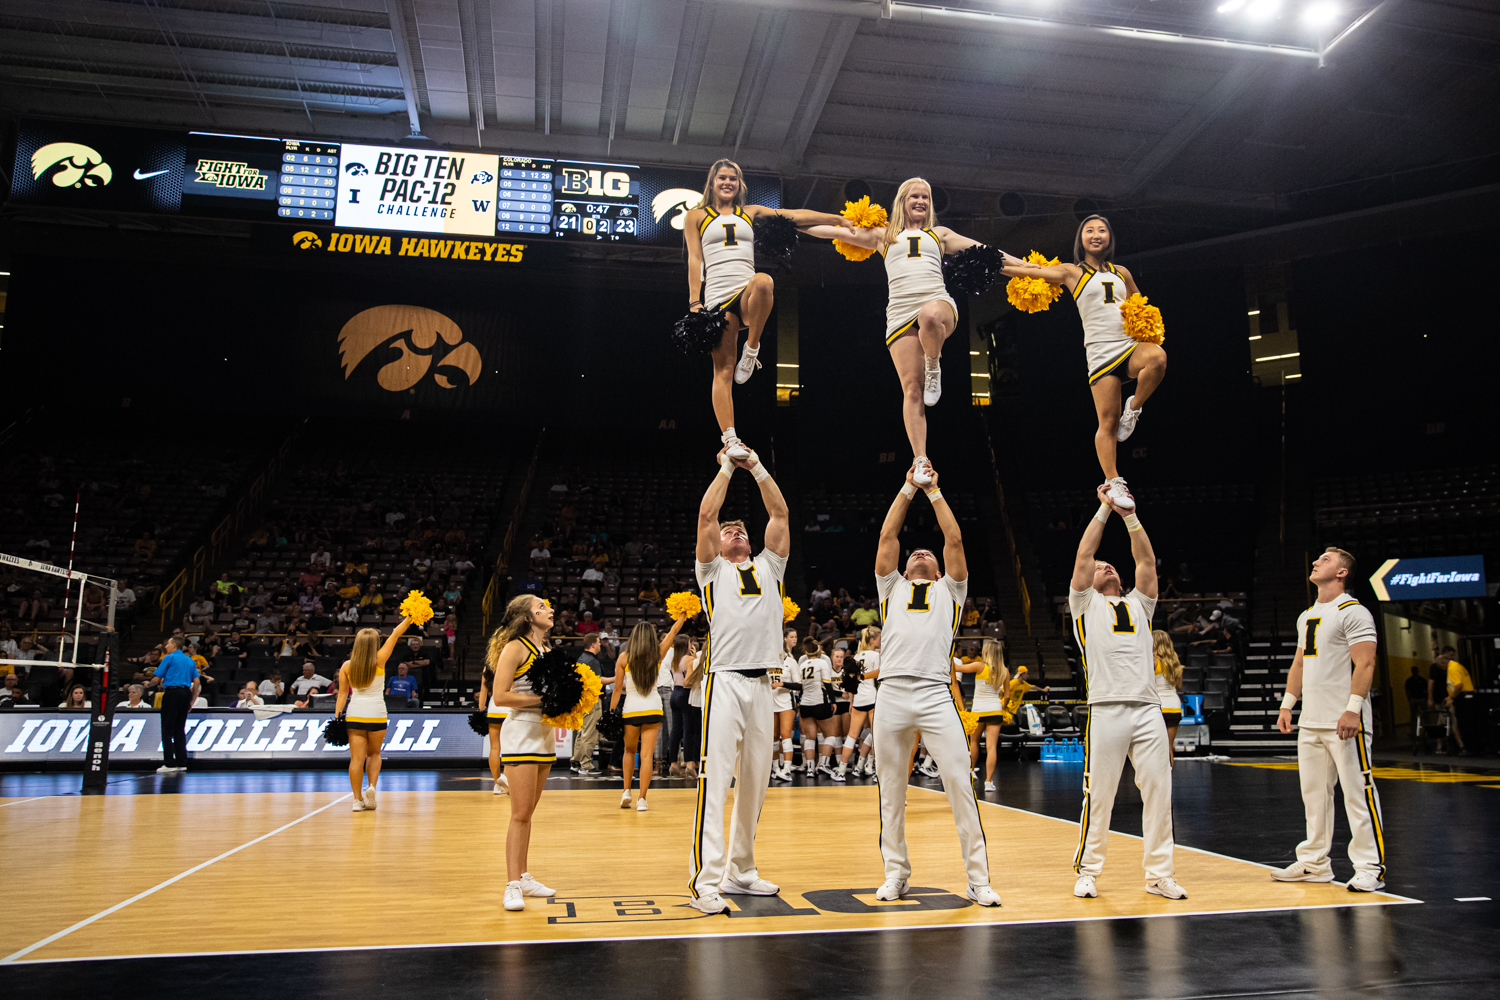 Iowa+spirit+teams+perform+during+a+timeout+during+a+volleyball+match+between+Iowa+and+Colorado+in+Carver-Hawkeye+Arena+on+Friday%2C+September+6%2C+2019.+The+Hawkeyes+dropped+their+season+opener+to+the+Buffaloes%2C+3-0.